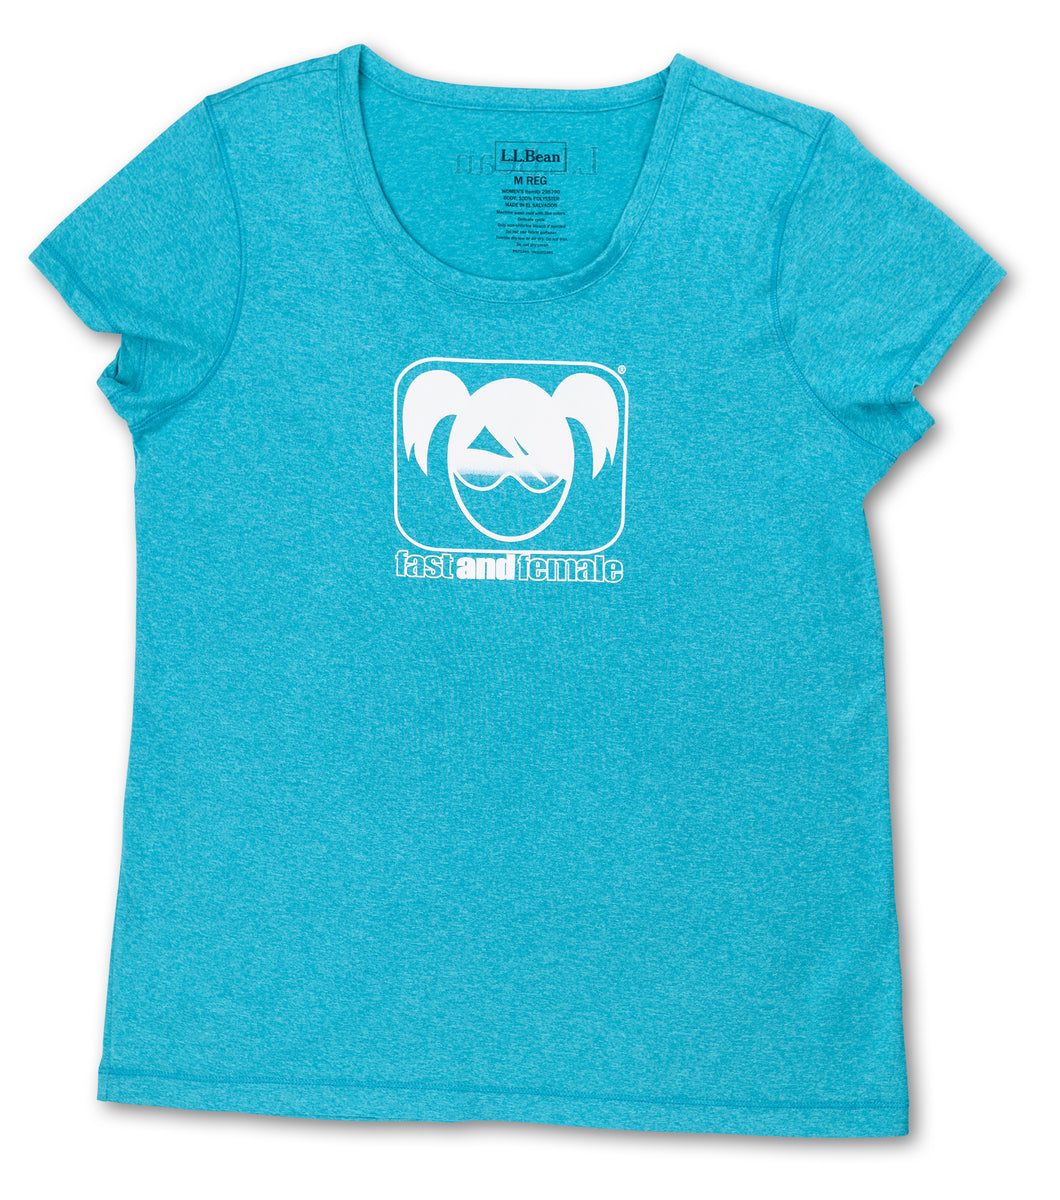 Fast and Female L.L.Bean Tech Tee, Teal